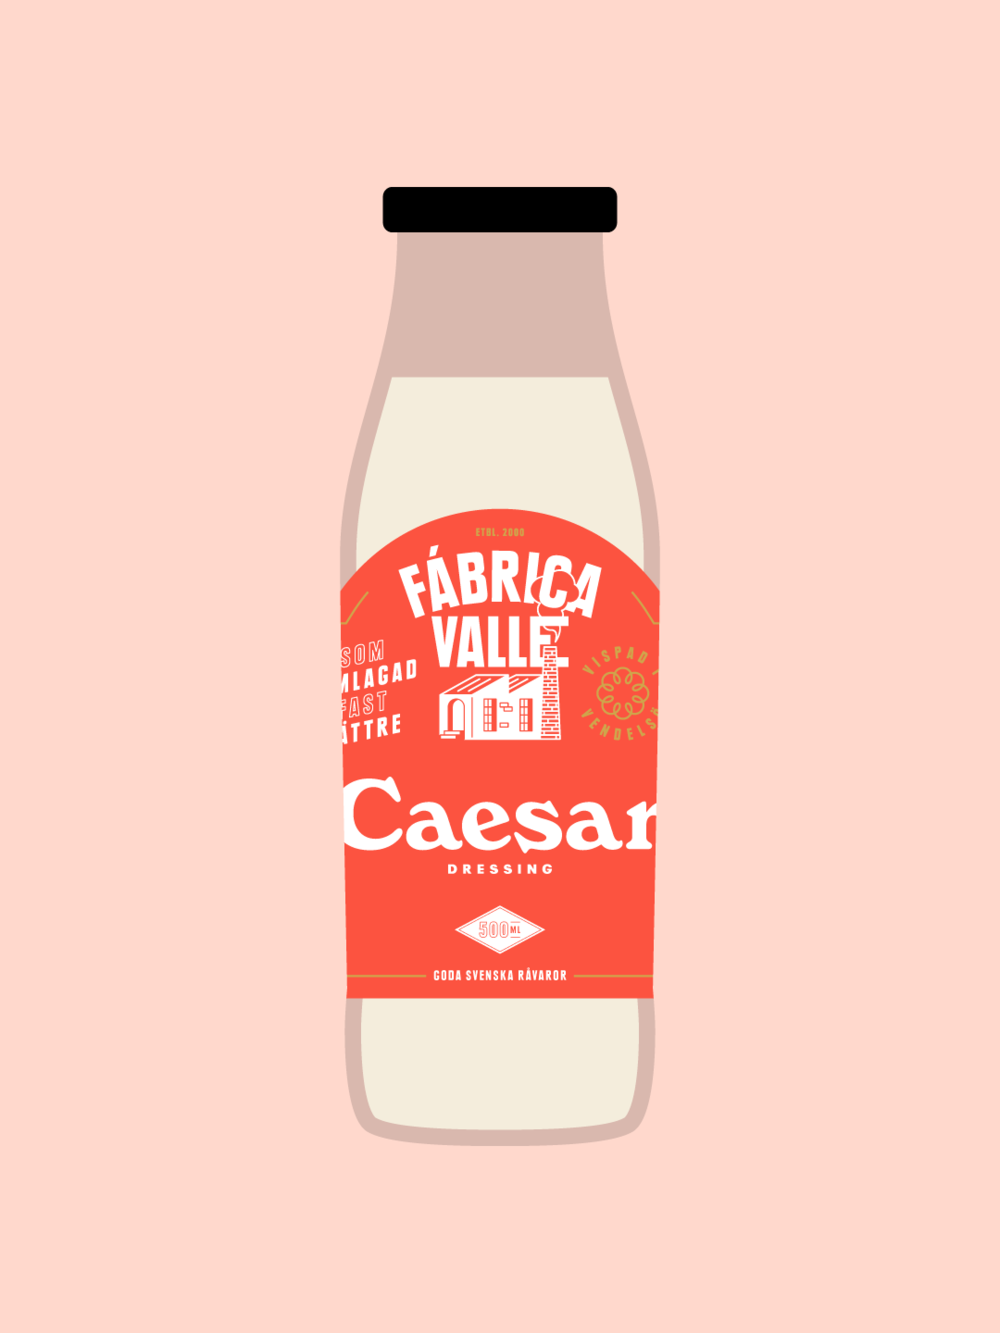 Fabrica_Valle_Illustration_Caesar_Original_1080x1440px_72ppi.png